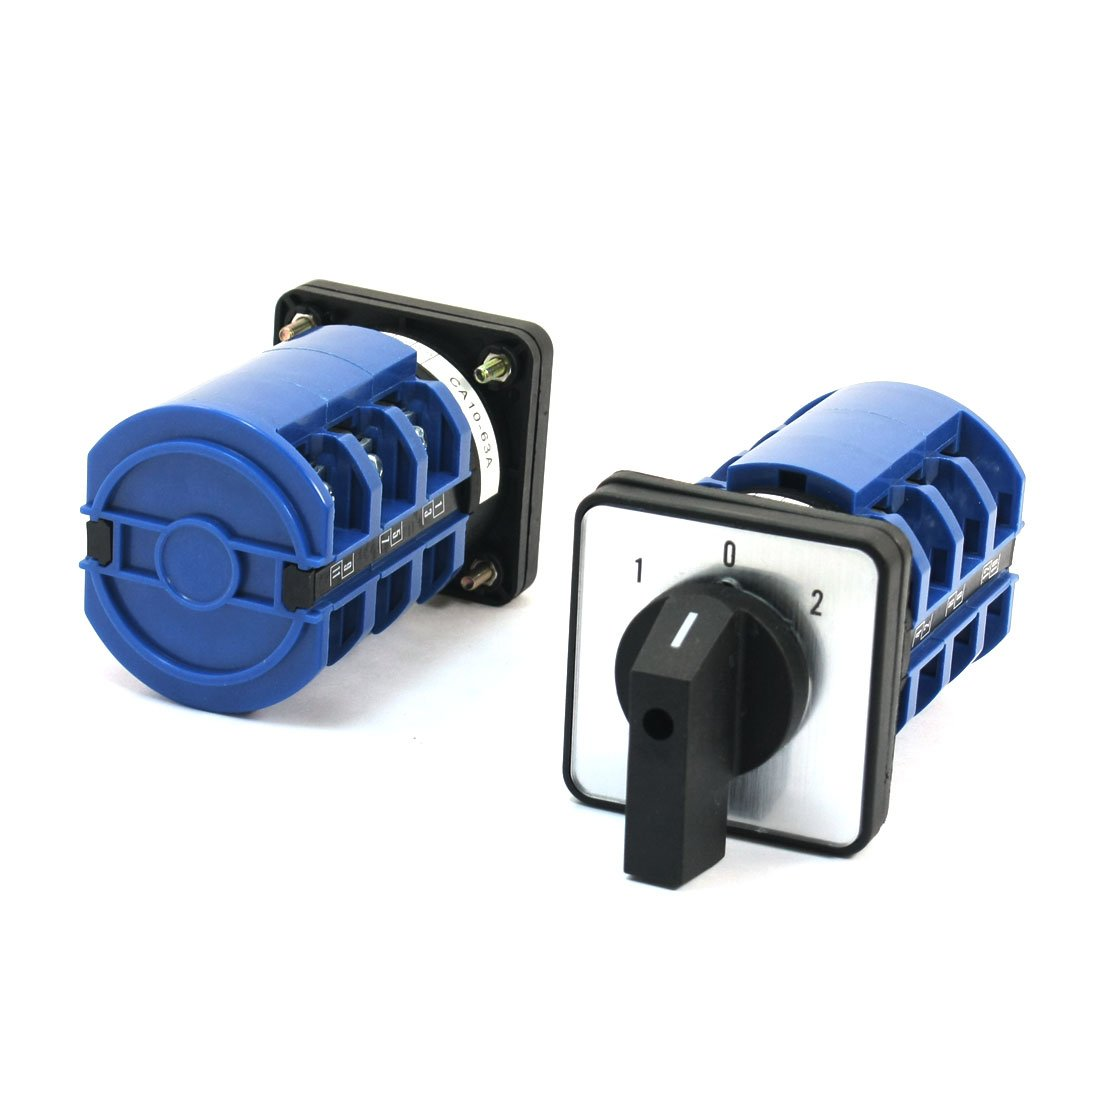 uxcell 660V 63A 12 Screw Terminal 3 Phase Rotary Cam Changeover Switch 2 Pcs by uxcell (Image #1)